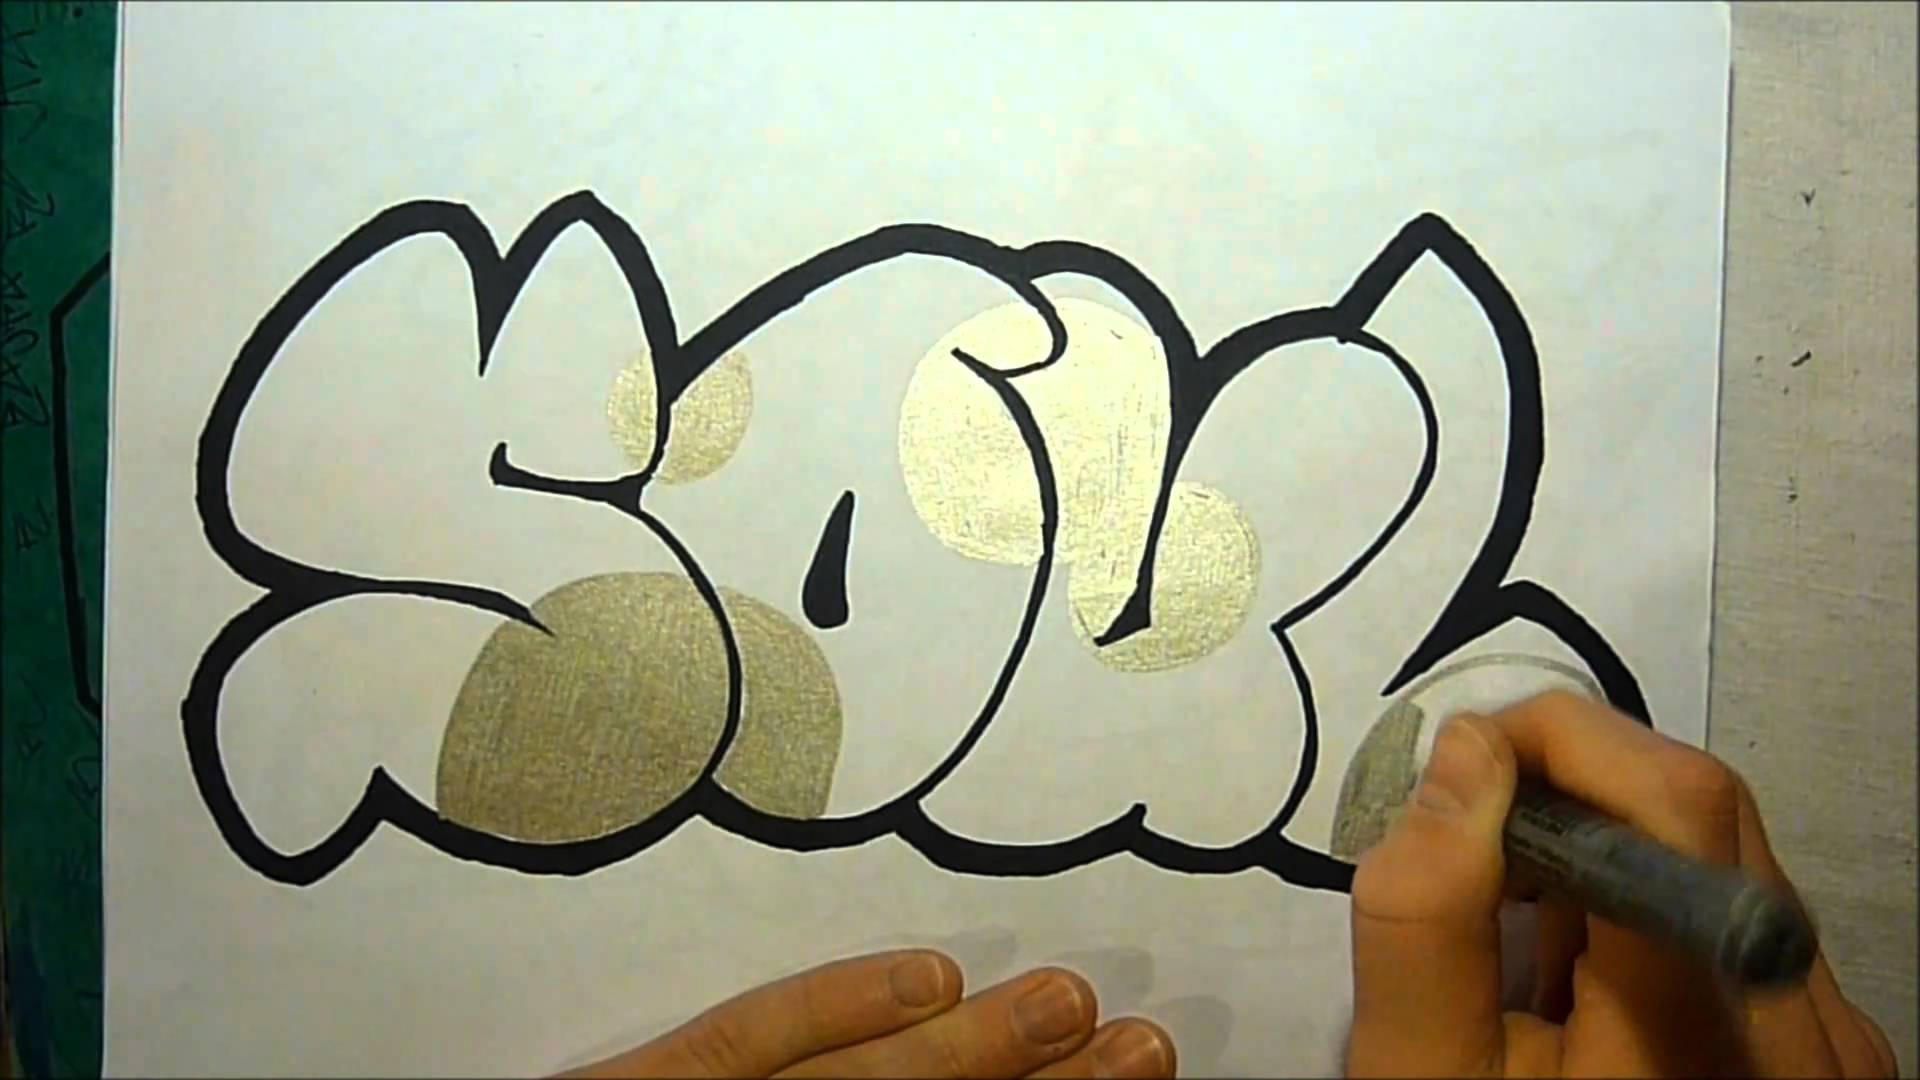 1920x1080 Graffiti Words To Write Graffiti Words To Write How To Draw